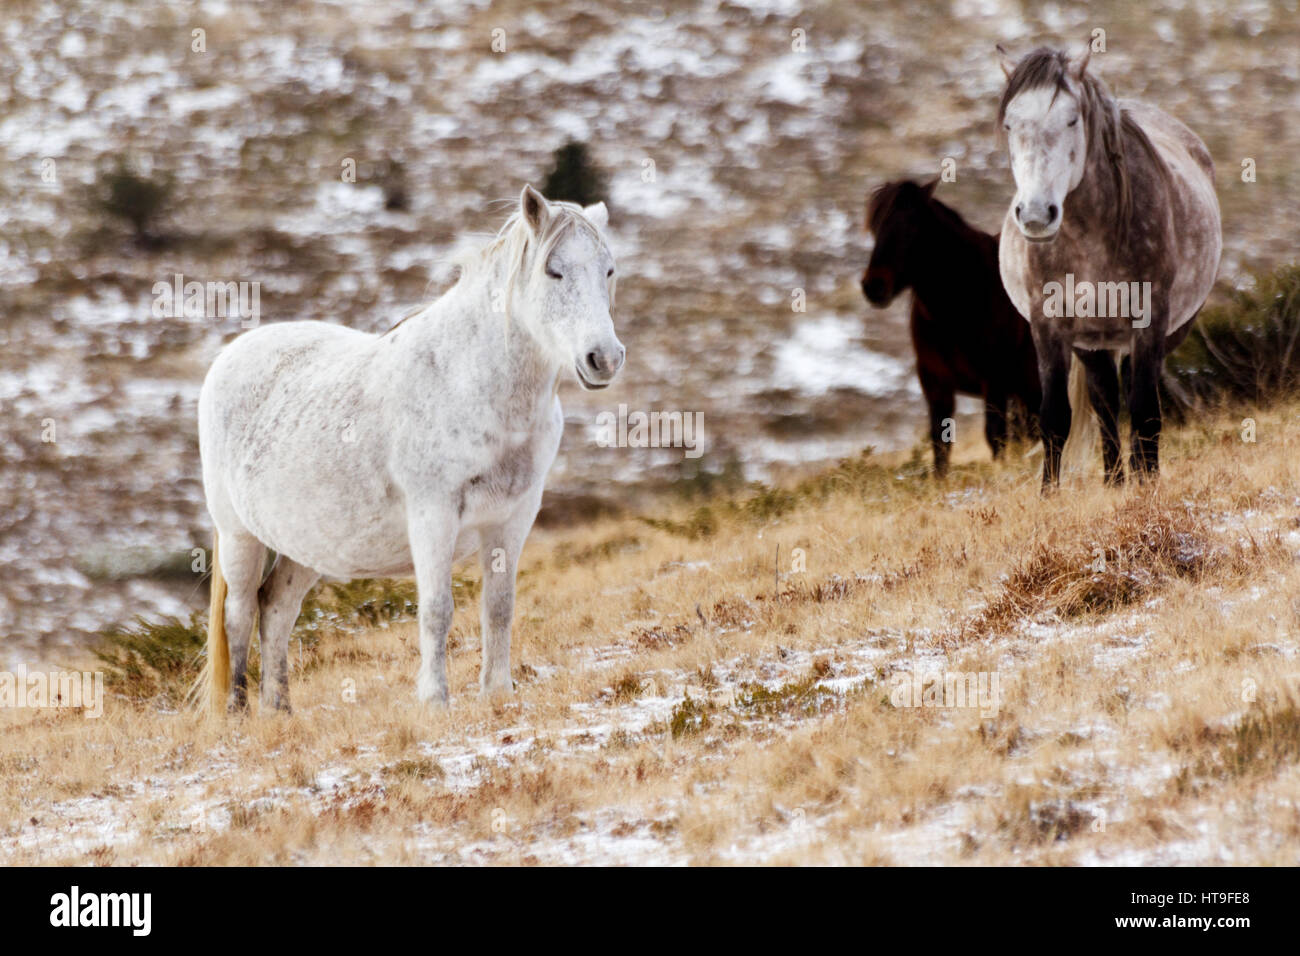 Wild white mustang horse, resting in a snowy field looking relaxed - Stock Image